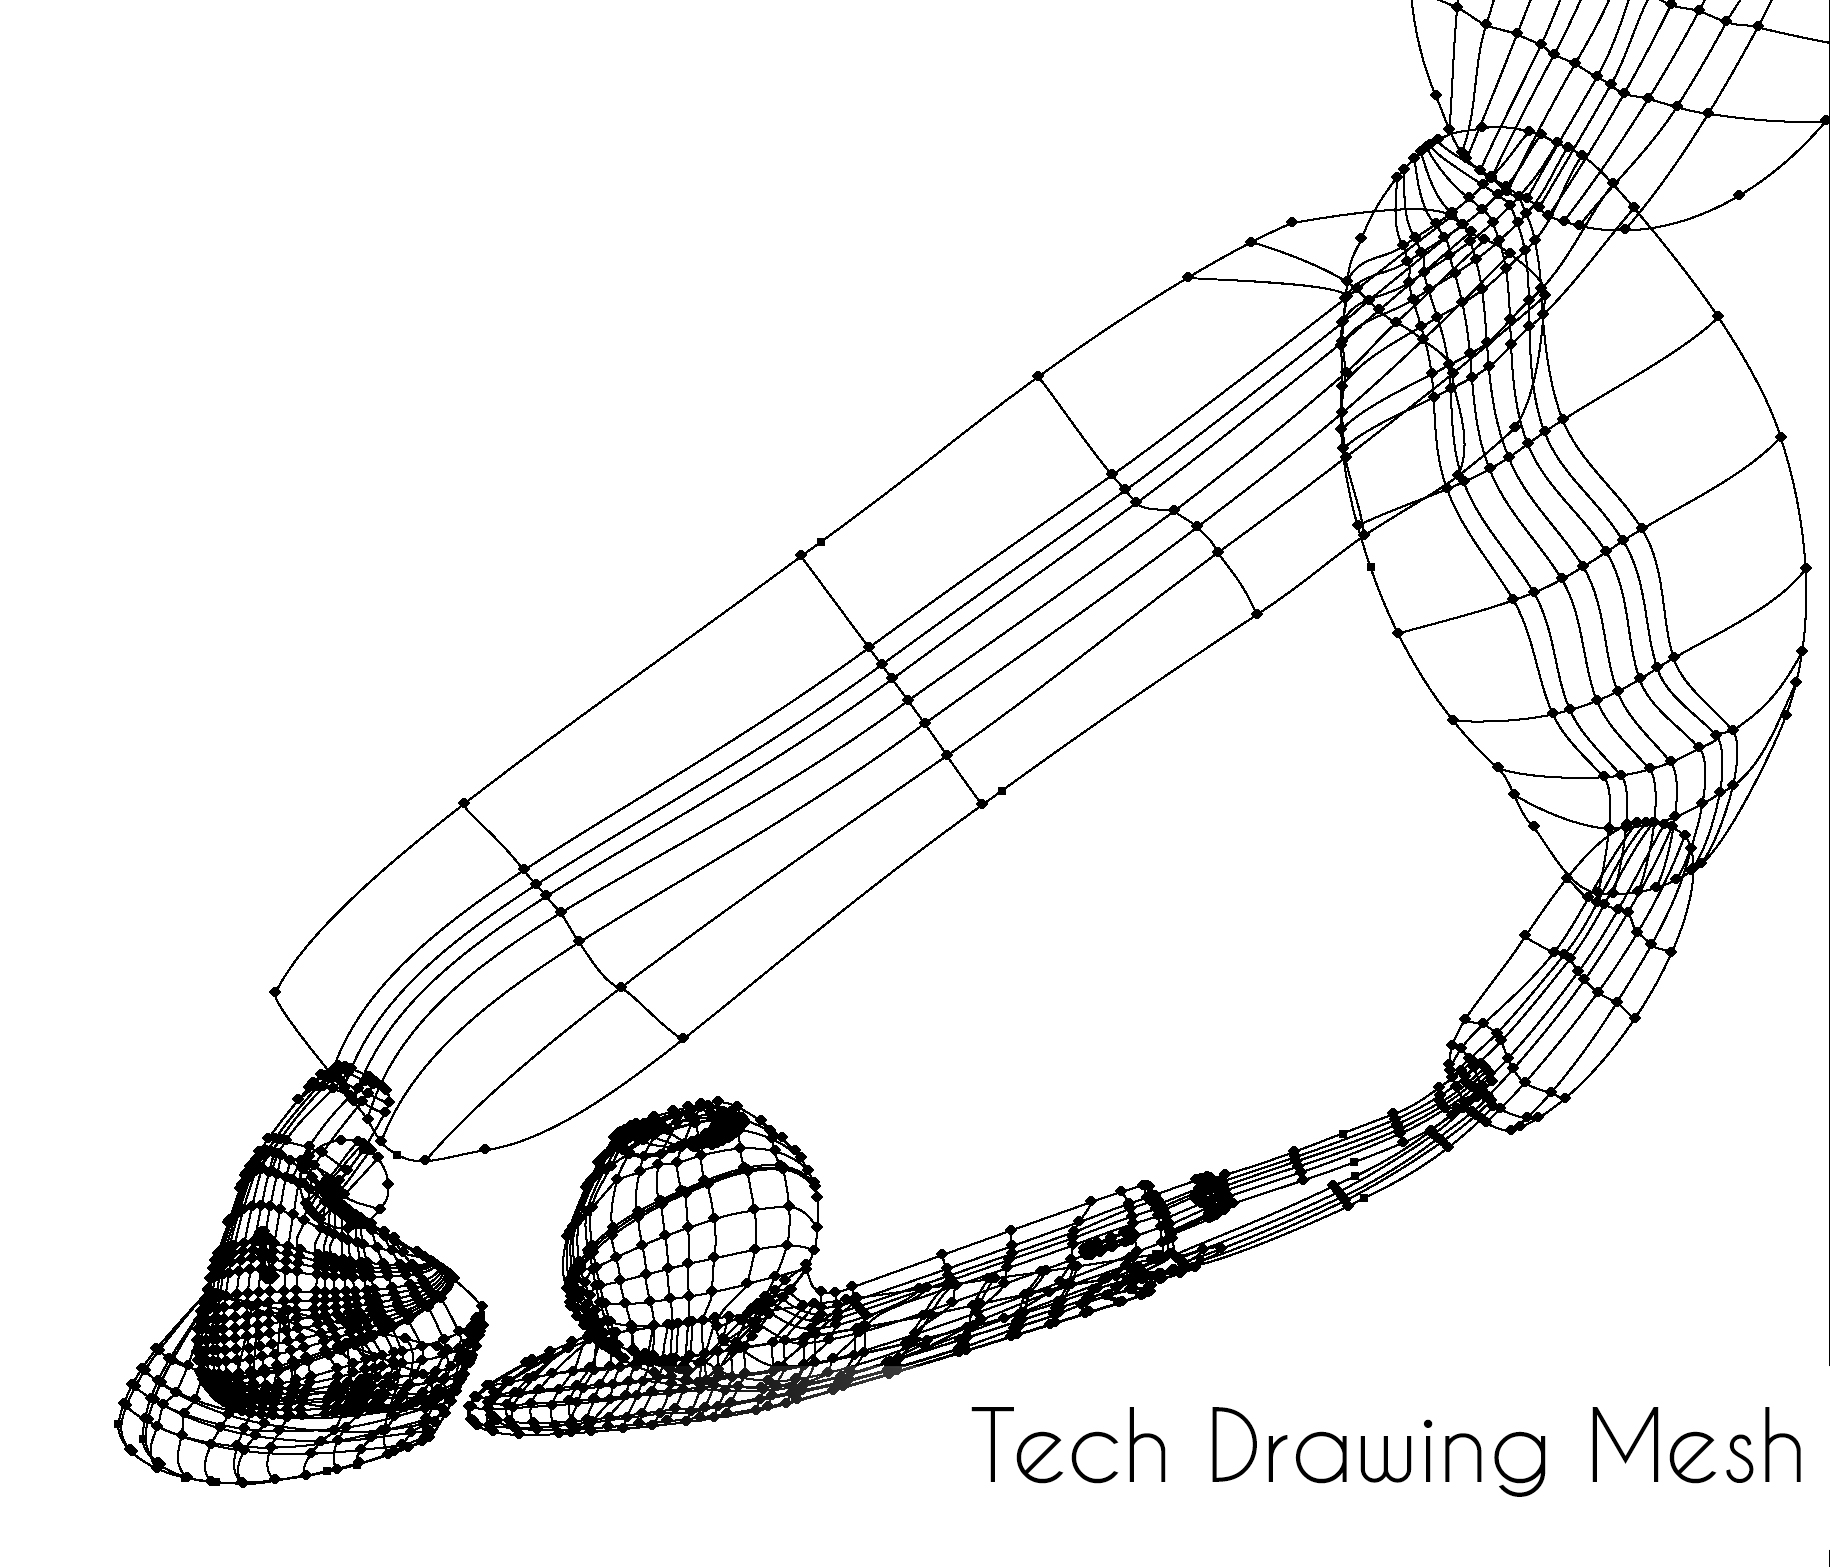 TechDrawing - Mesh3.jpg